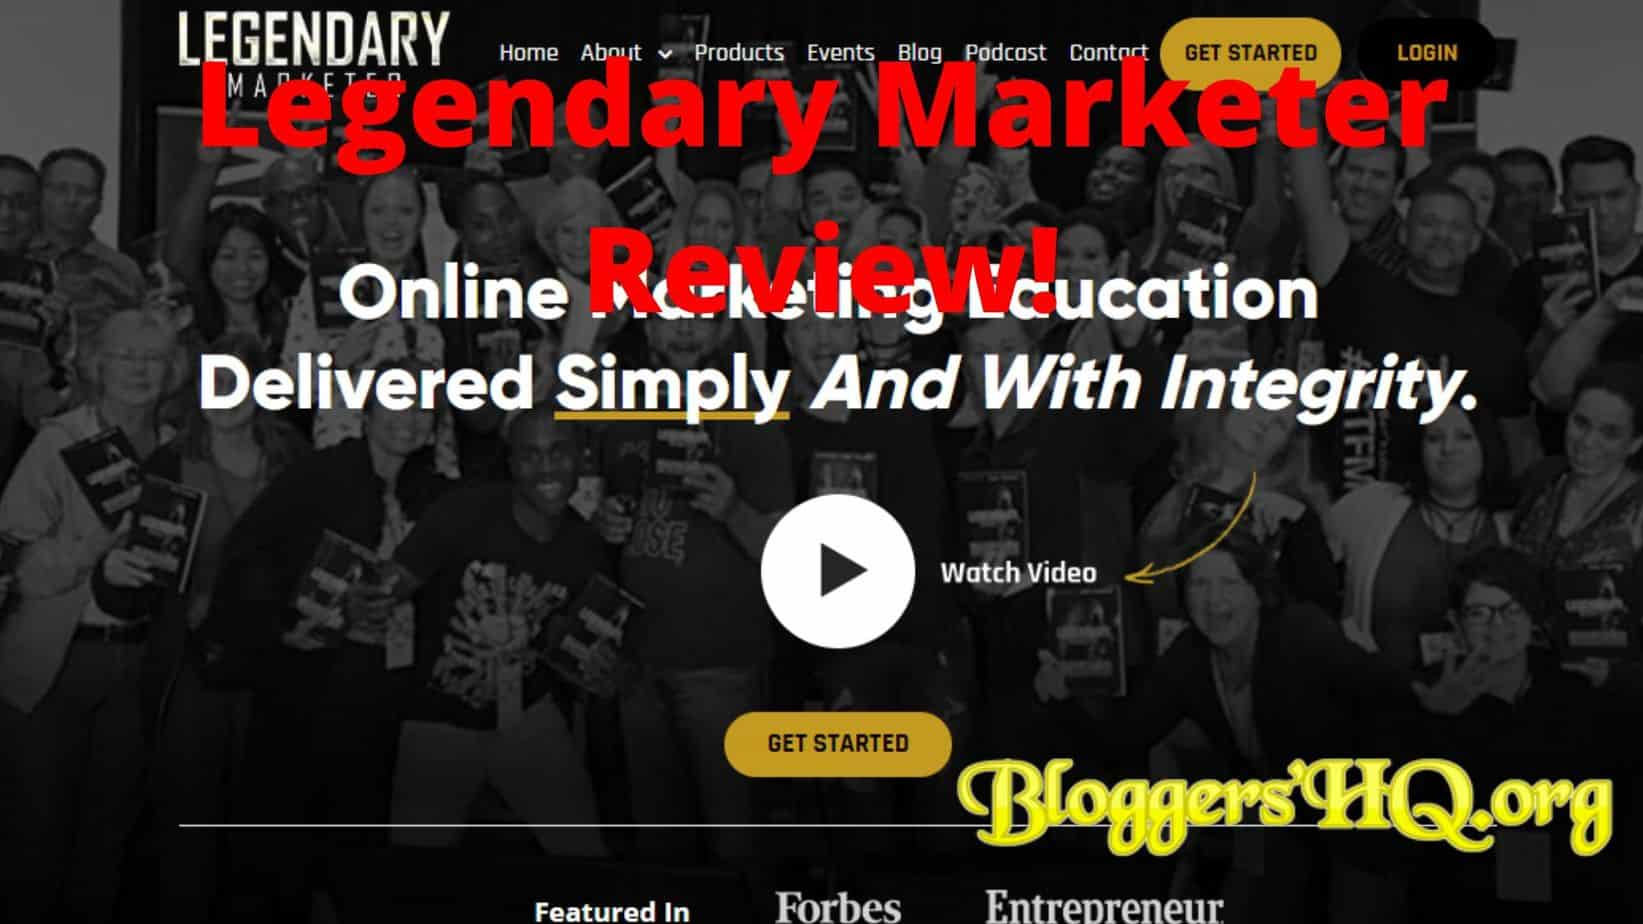 Legendary Marketer Coupon Code Cyber Monday